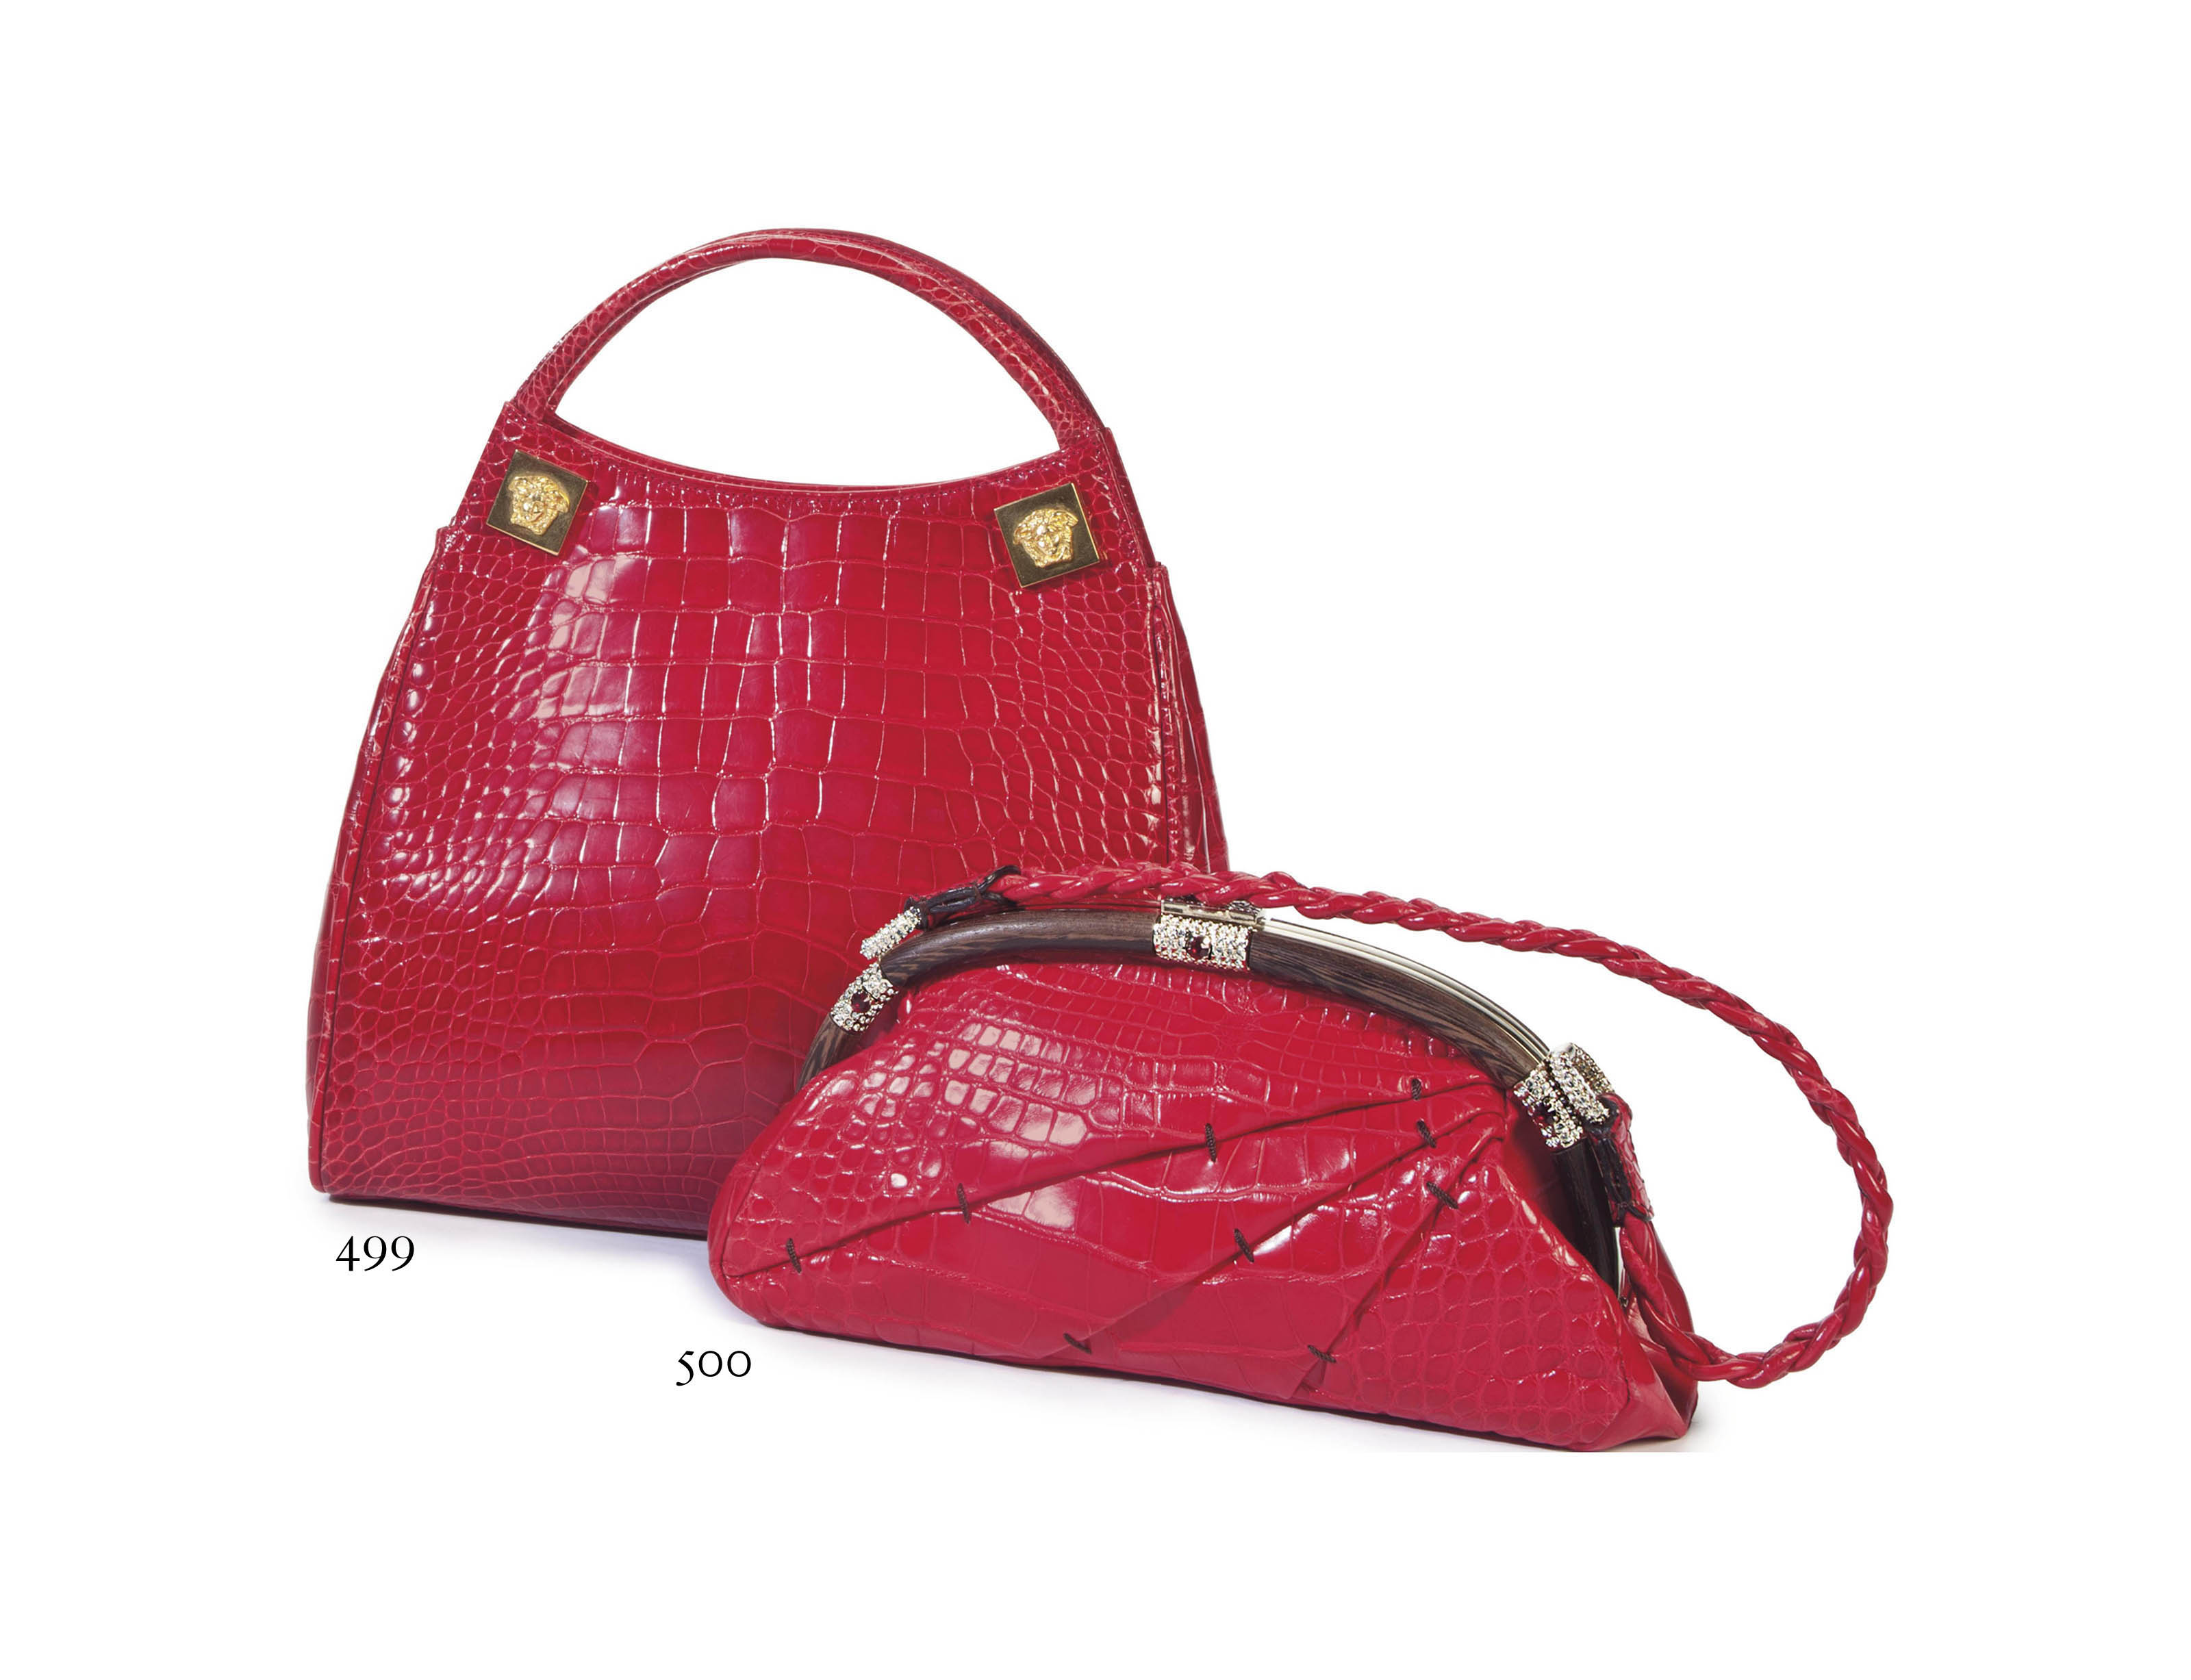 A CHERRY RED CROCODILE HANDBAG